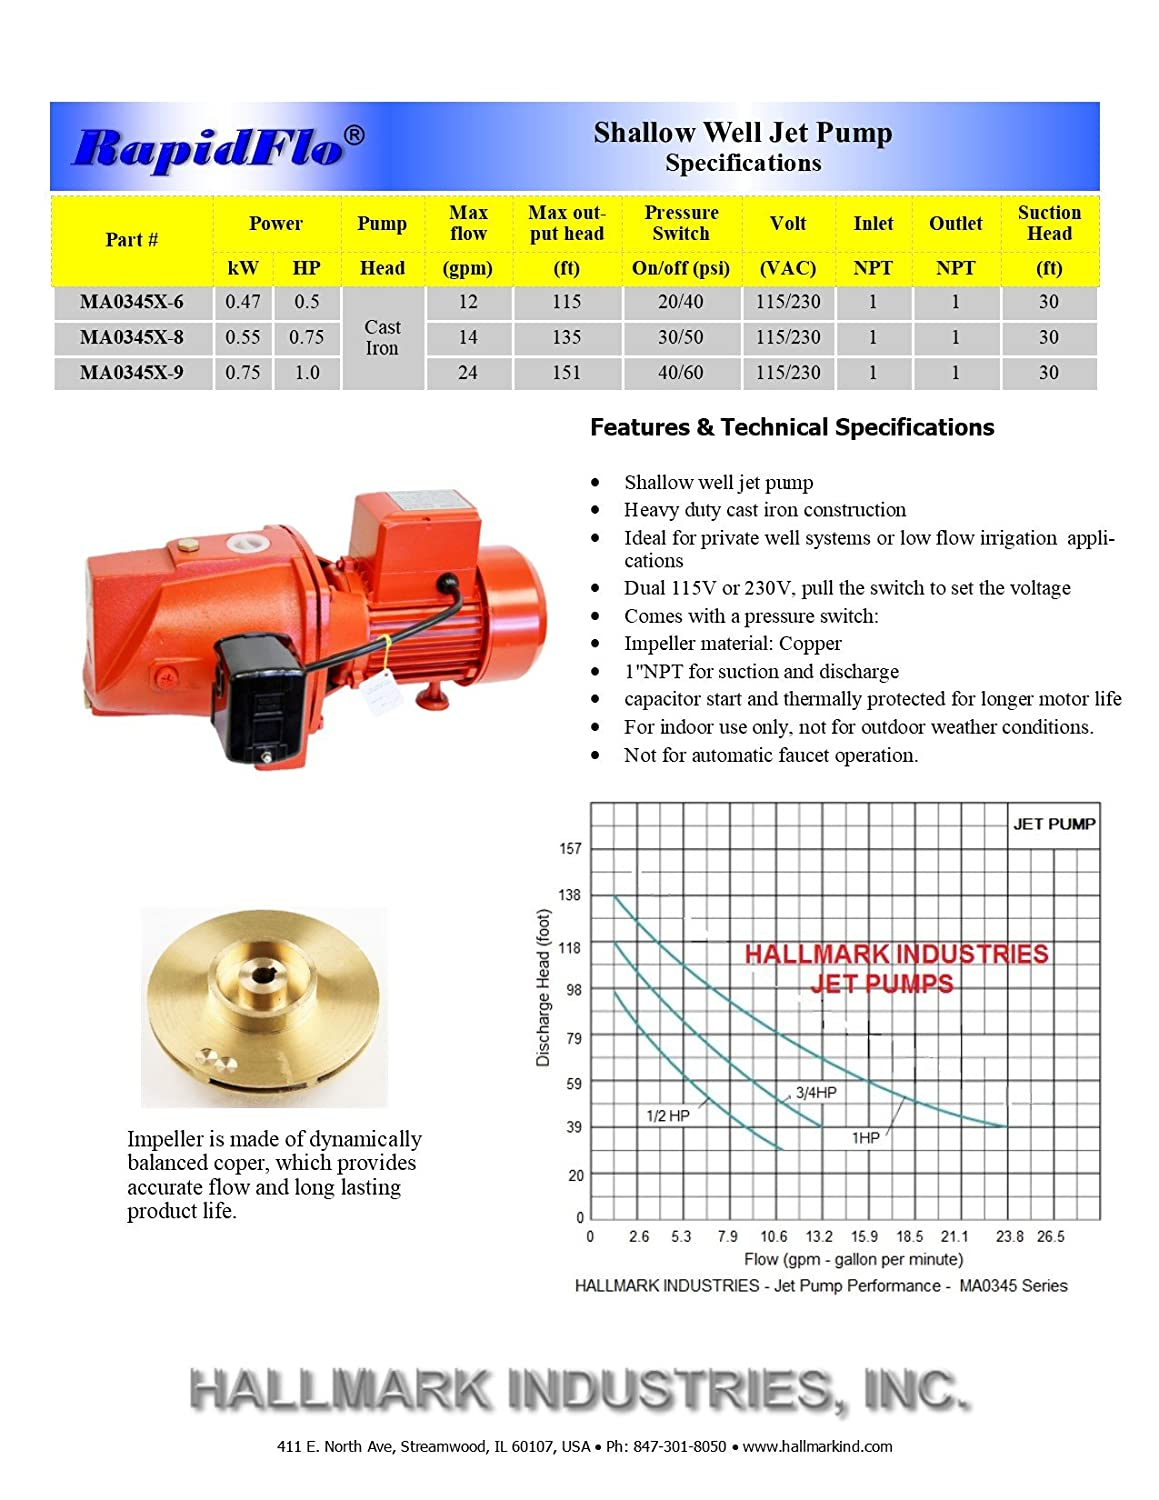 1//2 hp 115V//230V 12.5 GPM Heavy Duty Hallmark Industries MA0345X-6 Shallow Well Jet Pump with Pressure Swith